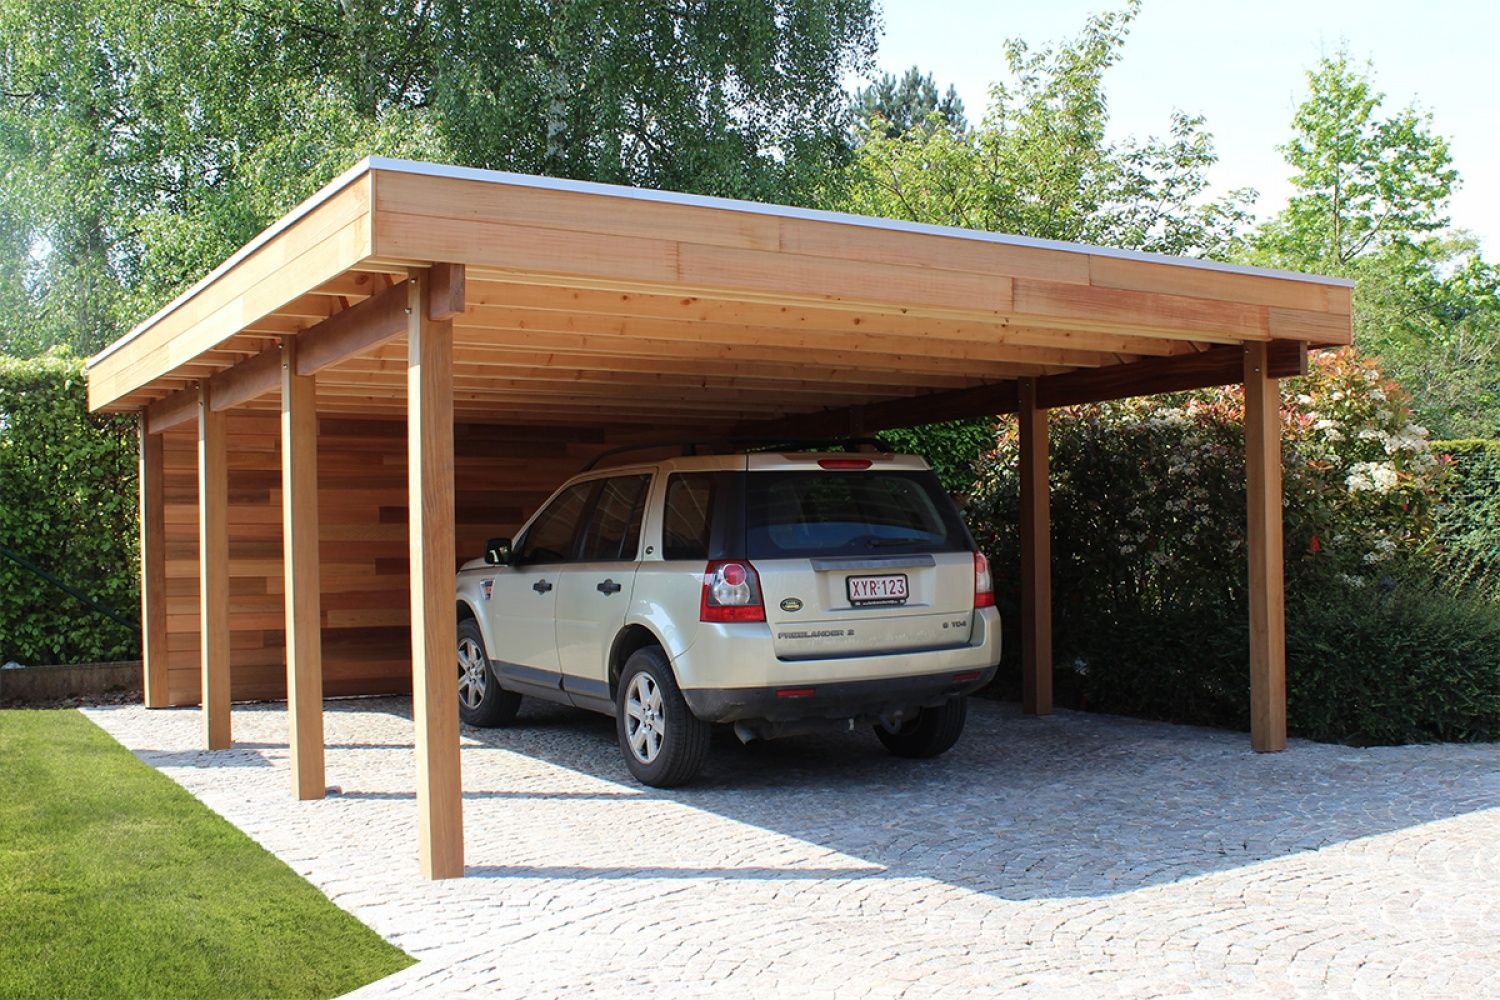 Carport of garage in hout met berging of fietsstalling - Woodstar ...